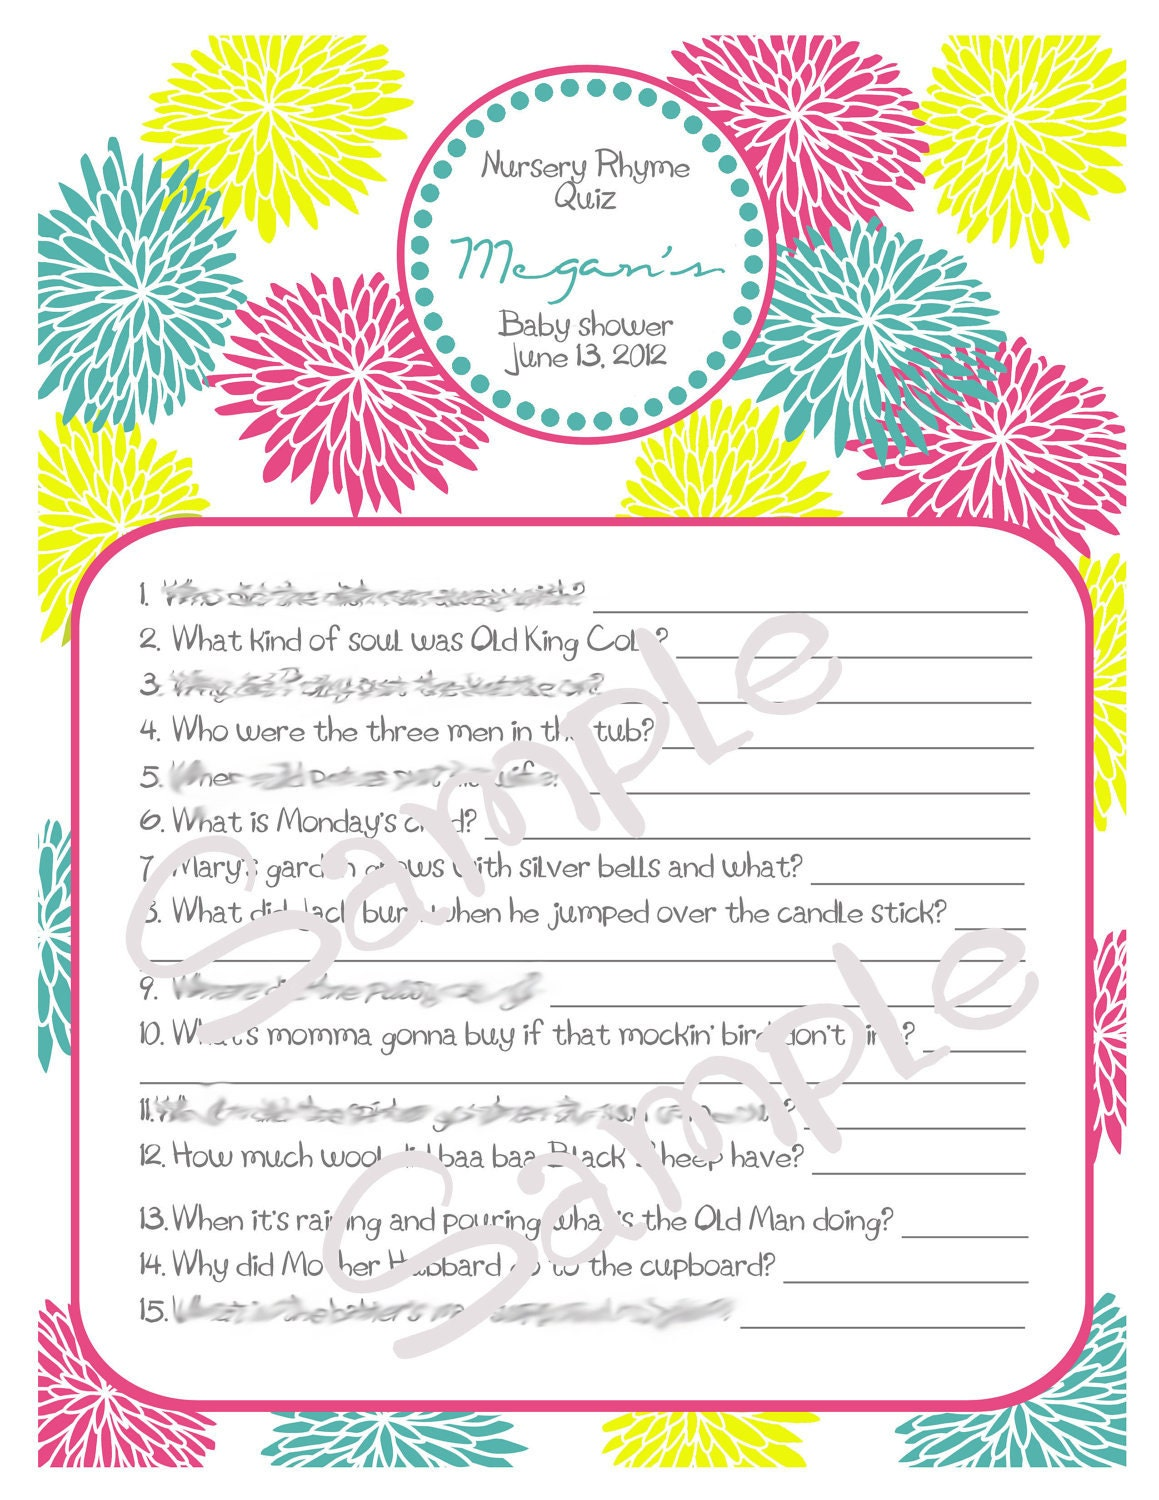 nursery rhyme quiz printable custom baby shower game